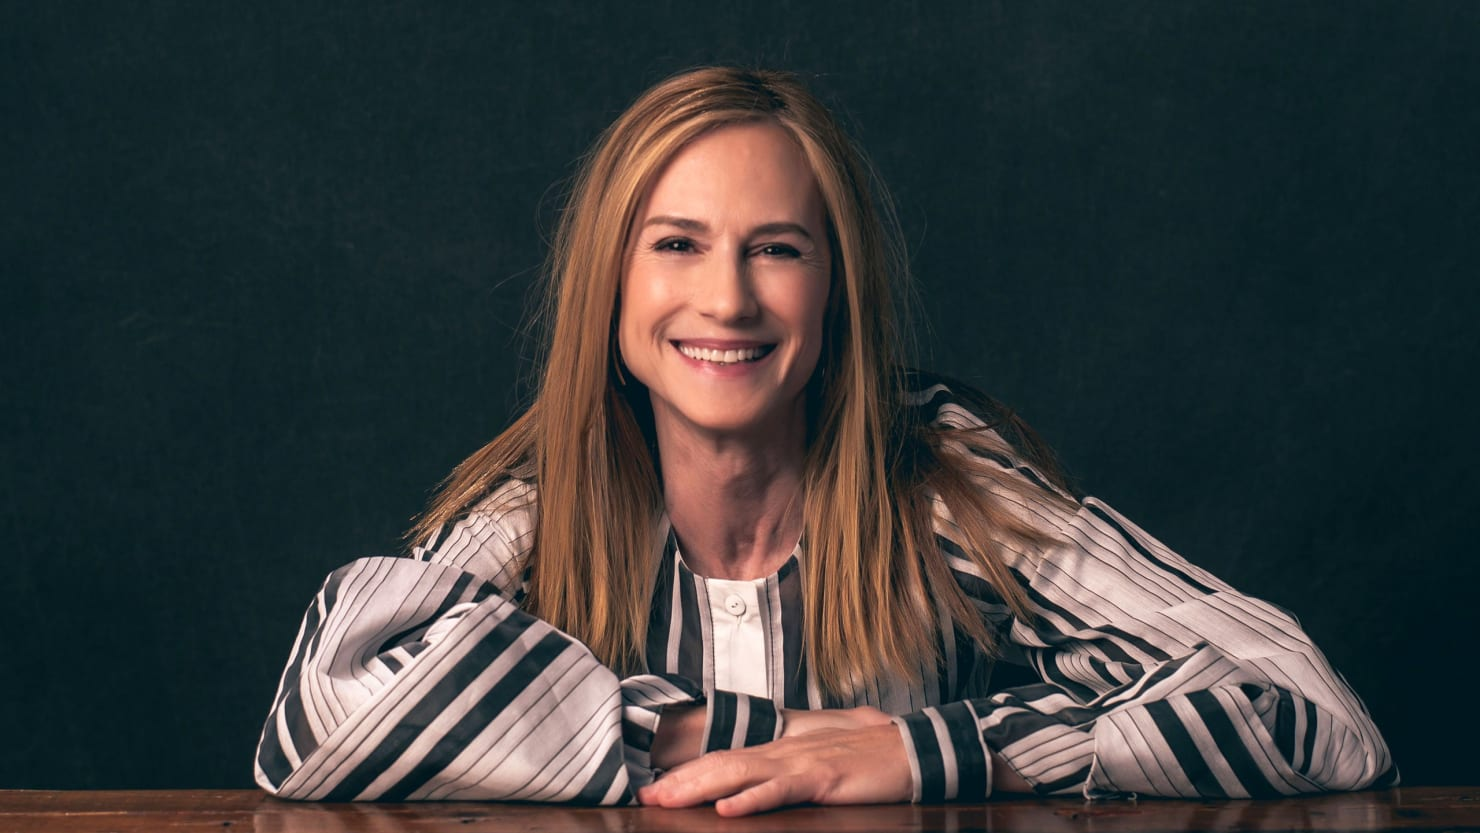 Резултат с изображение за holly hunter